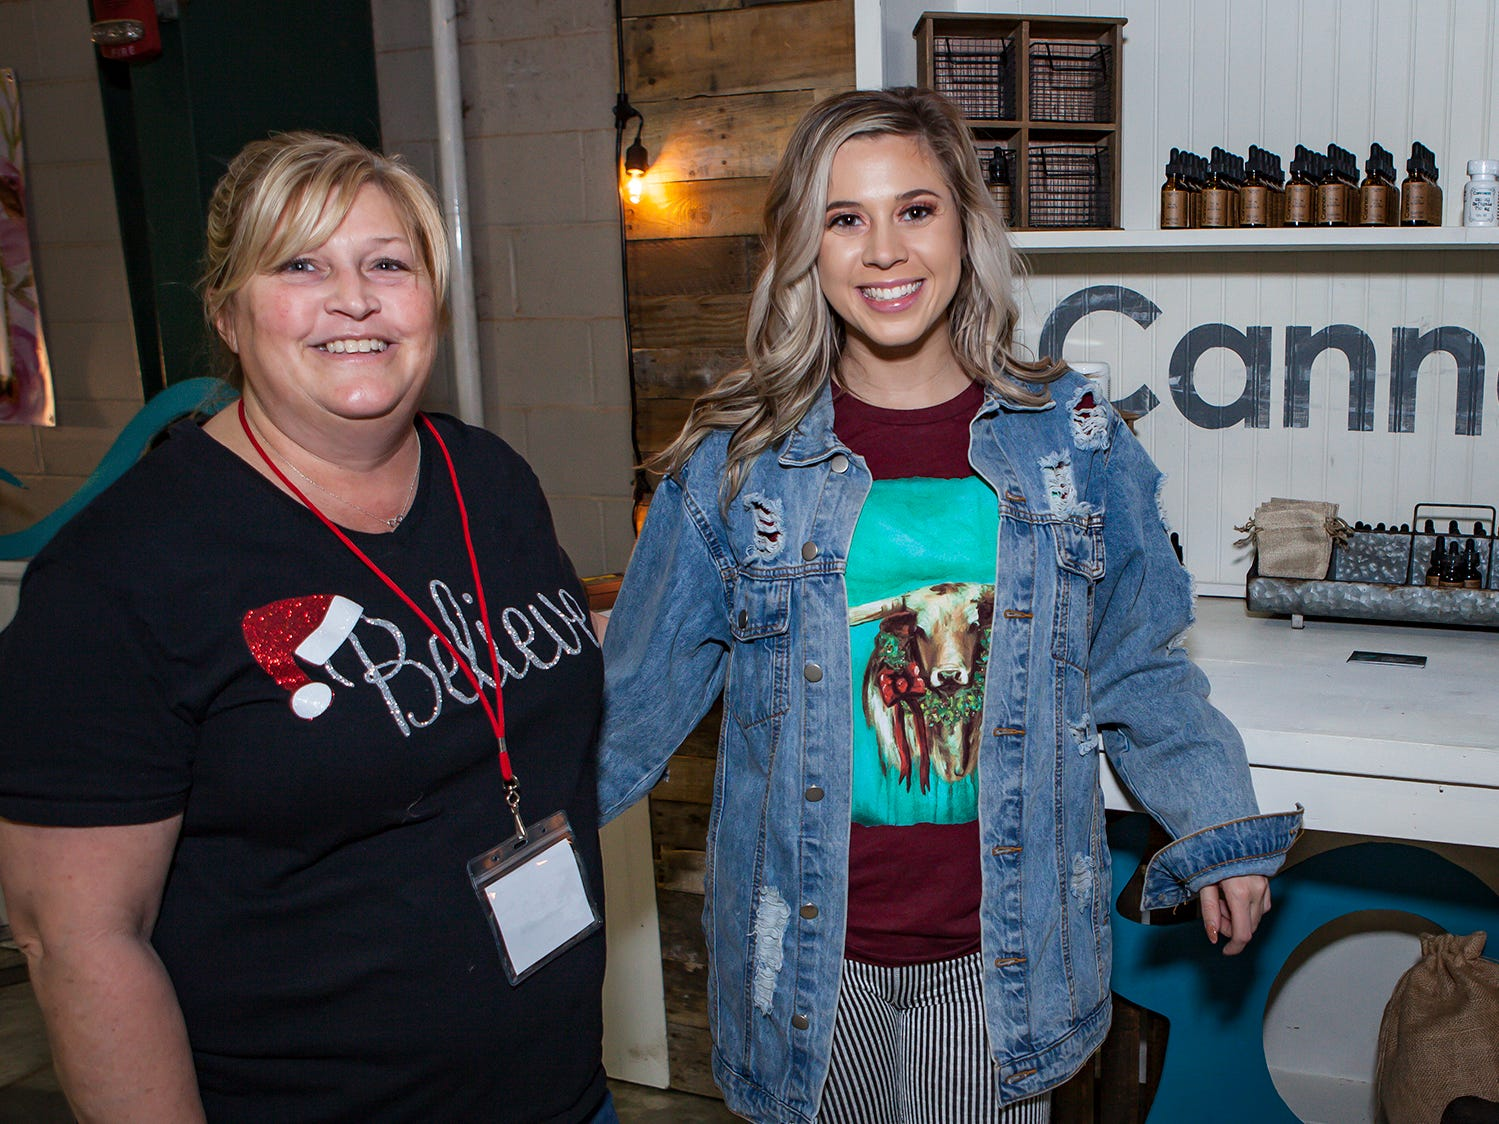 Carol Prince and Ashley Sutton at MIstletoe & Martinis on Friday, Nov. 30, the preview party for the 2018 Hollyday Marketplace hosted by the Junior League of Murfreesboro.